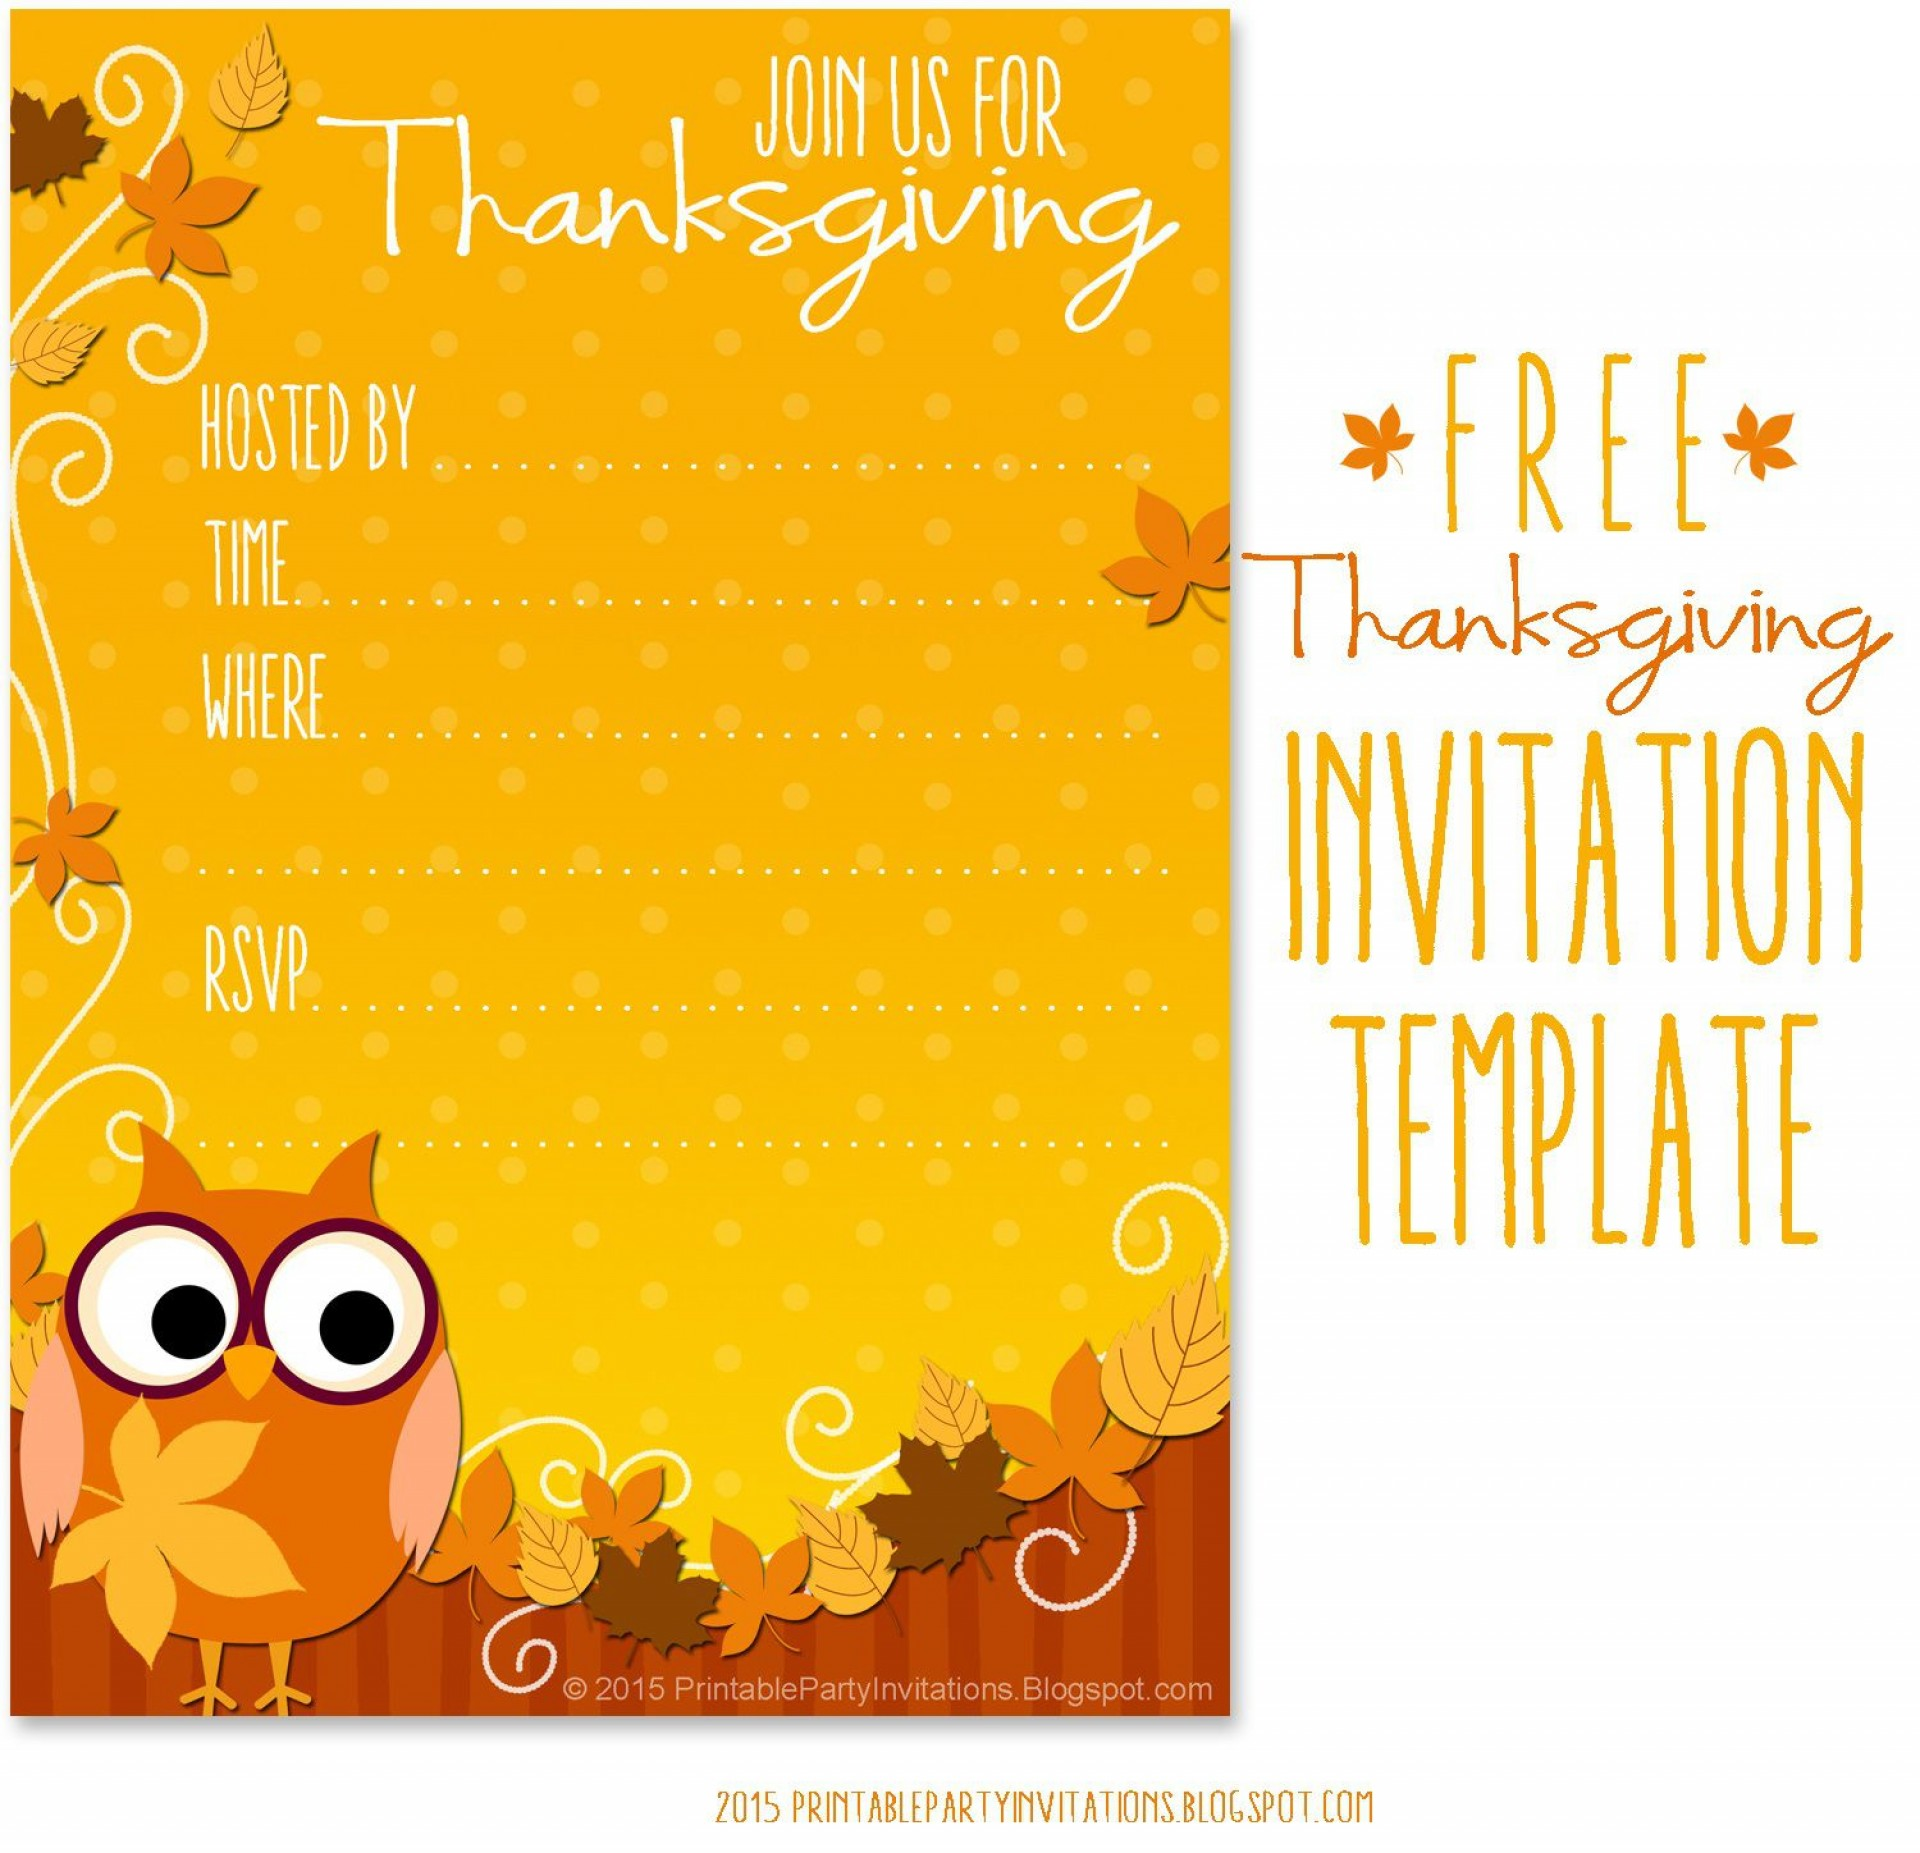 009 Awful Free Thanksgiving Invitation Template Highest Quality  Templates Printable Dinner Download Potluck1920